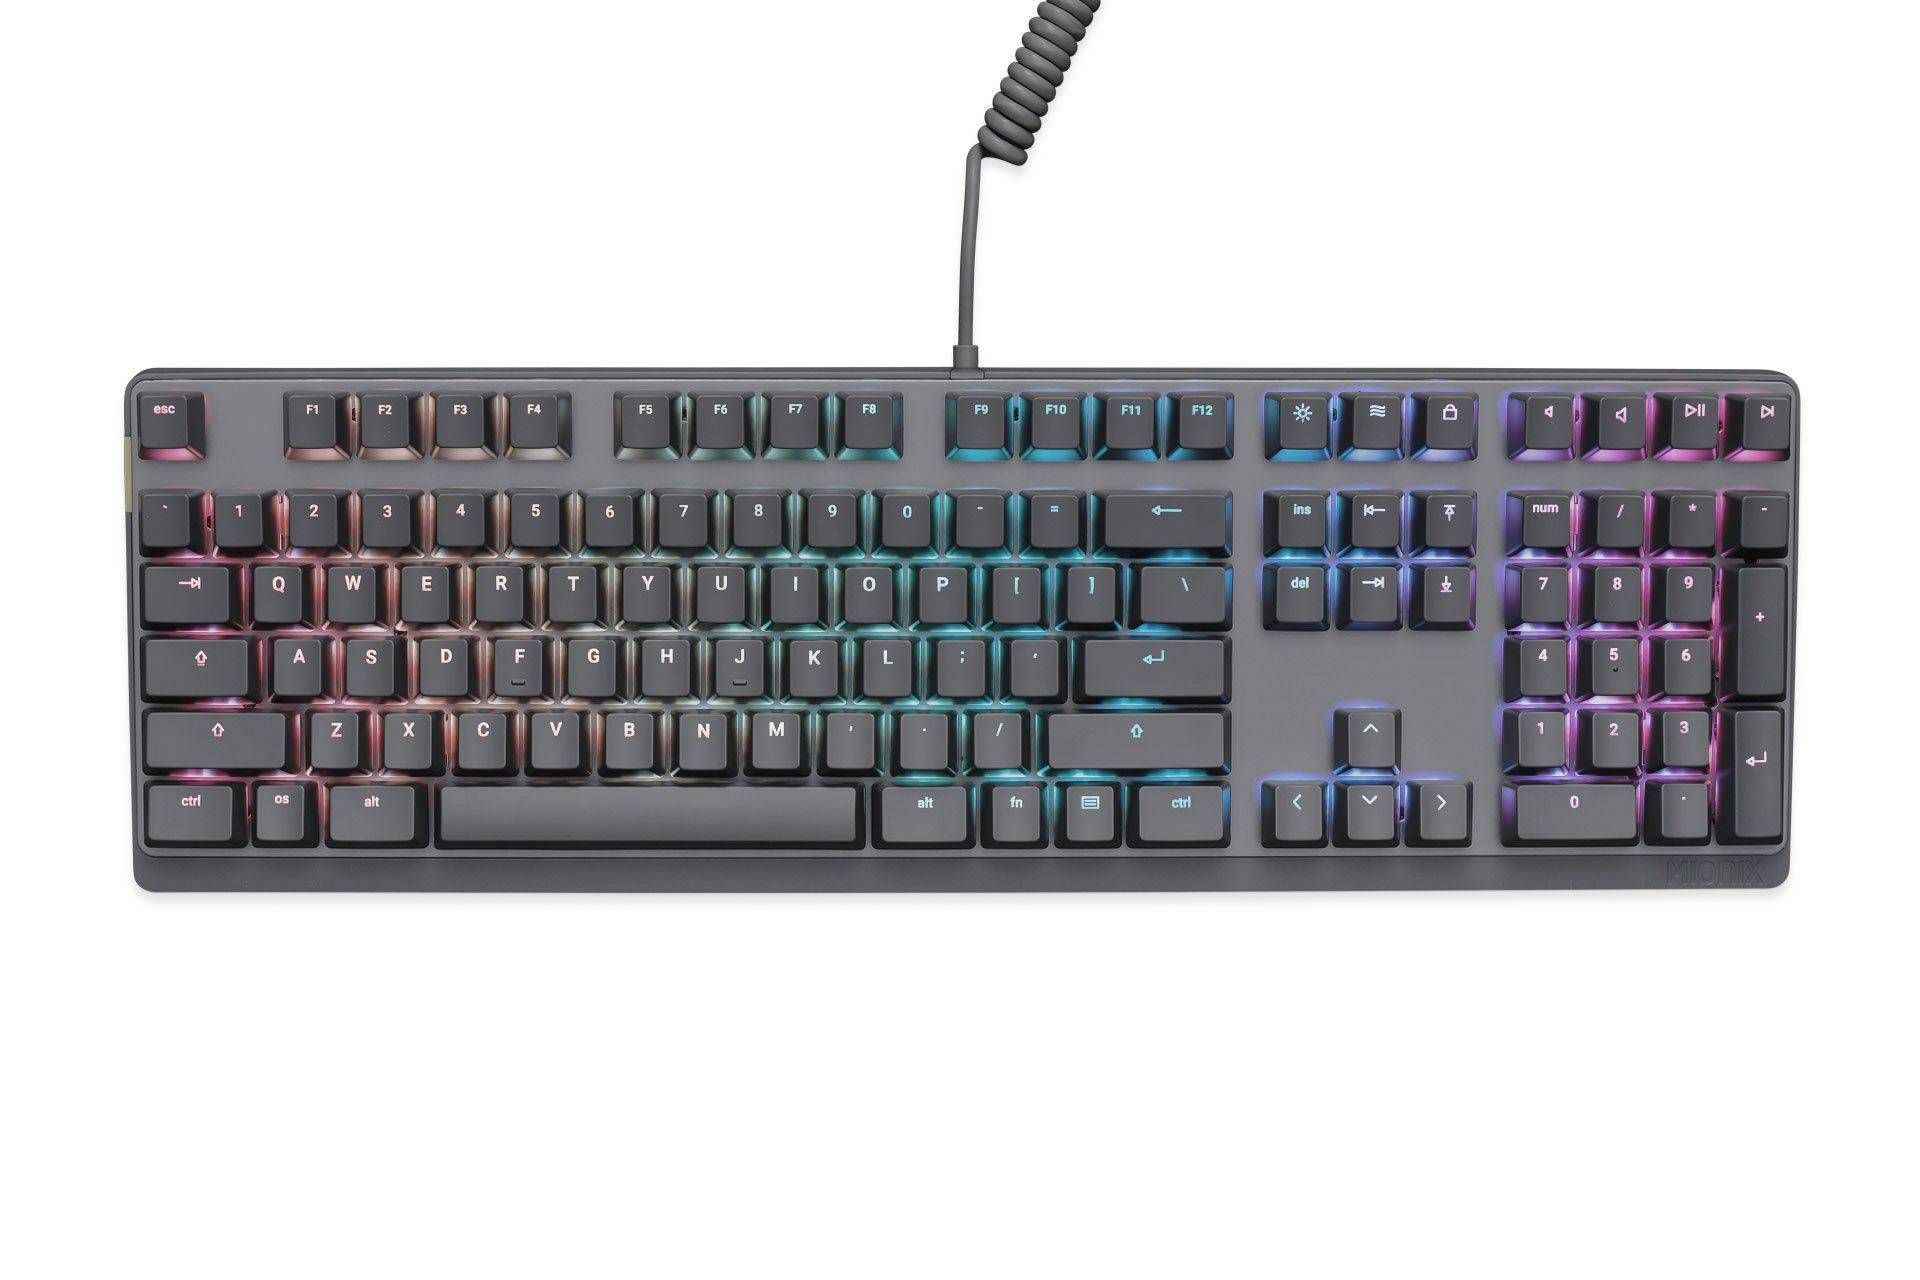 Mionix Wei PC and Mac RGB Mechanical Keyboard Silent - Great For eSports Made For Gamers And Artists - Quite Cherry MX Red Switches - Durable USB Metal Keyboard Black / Grey